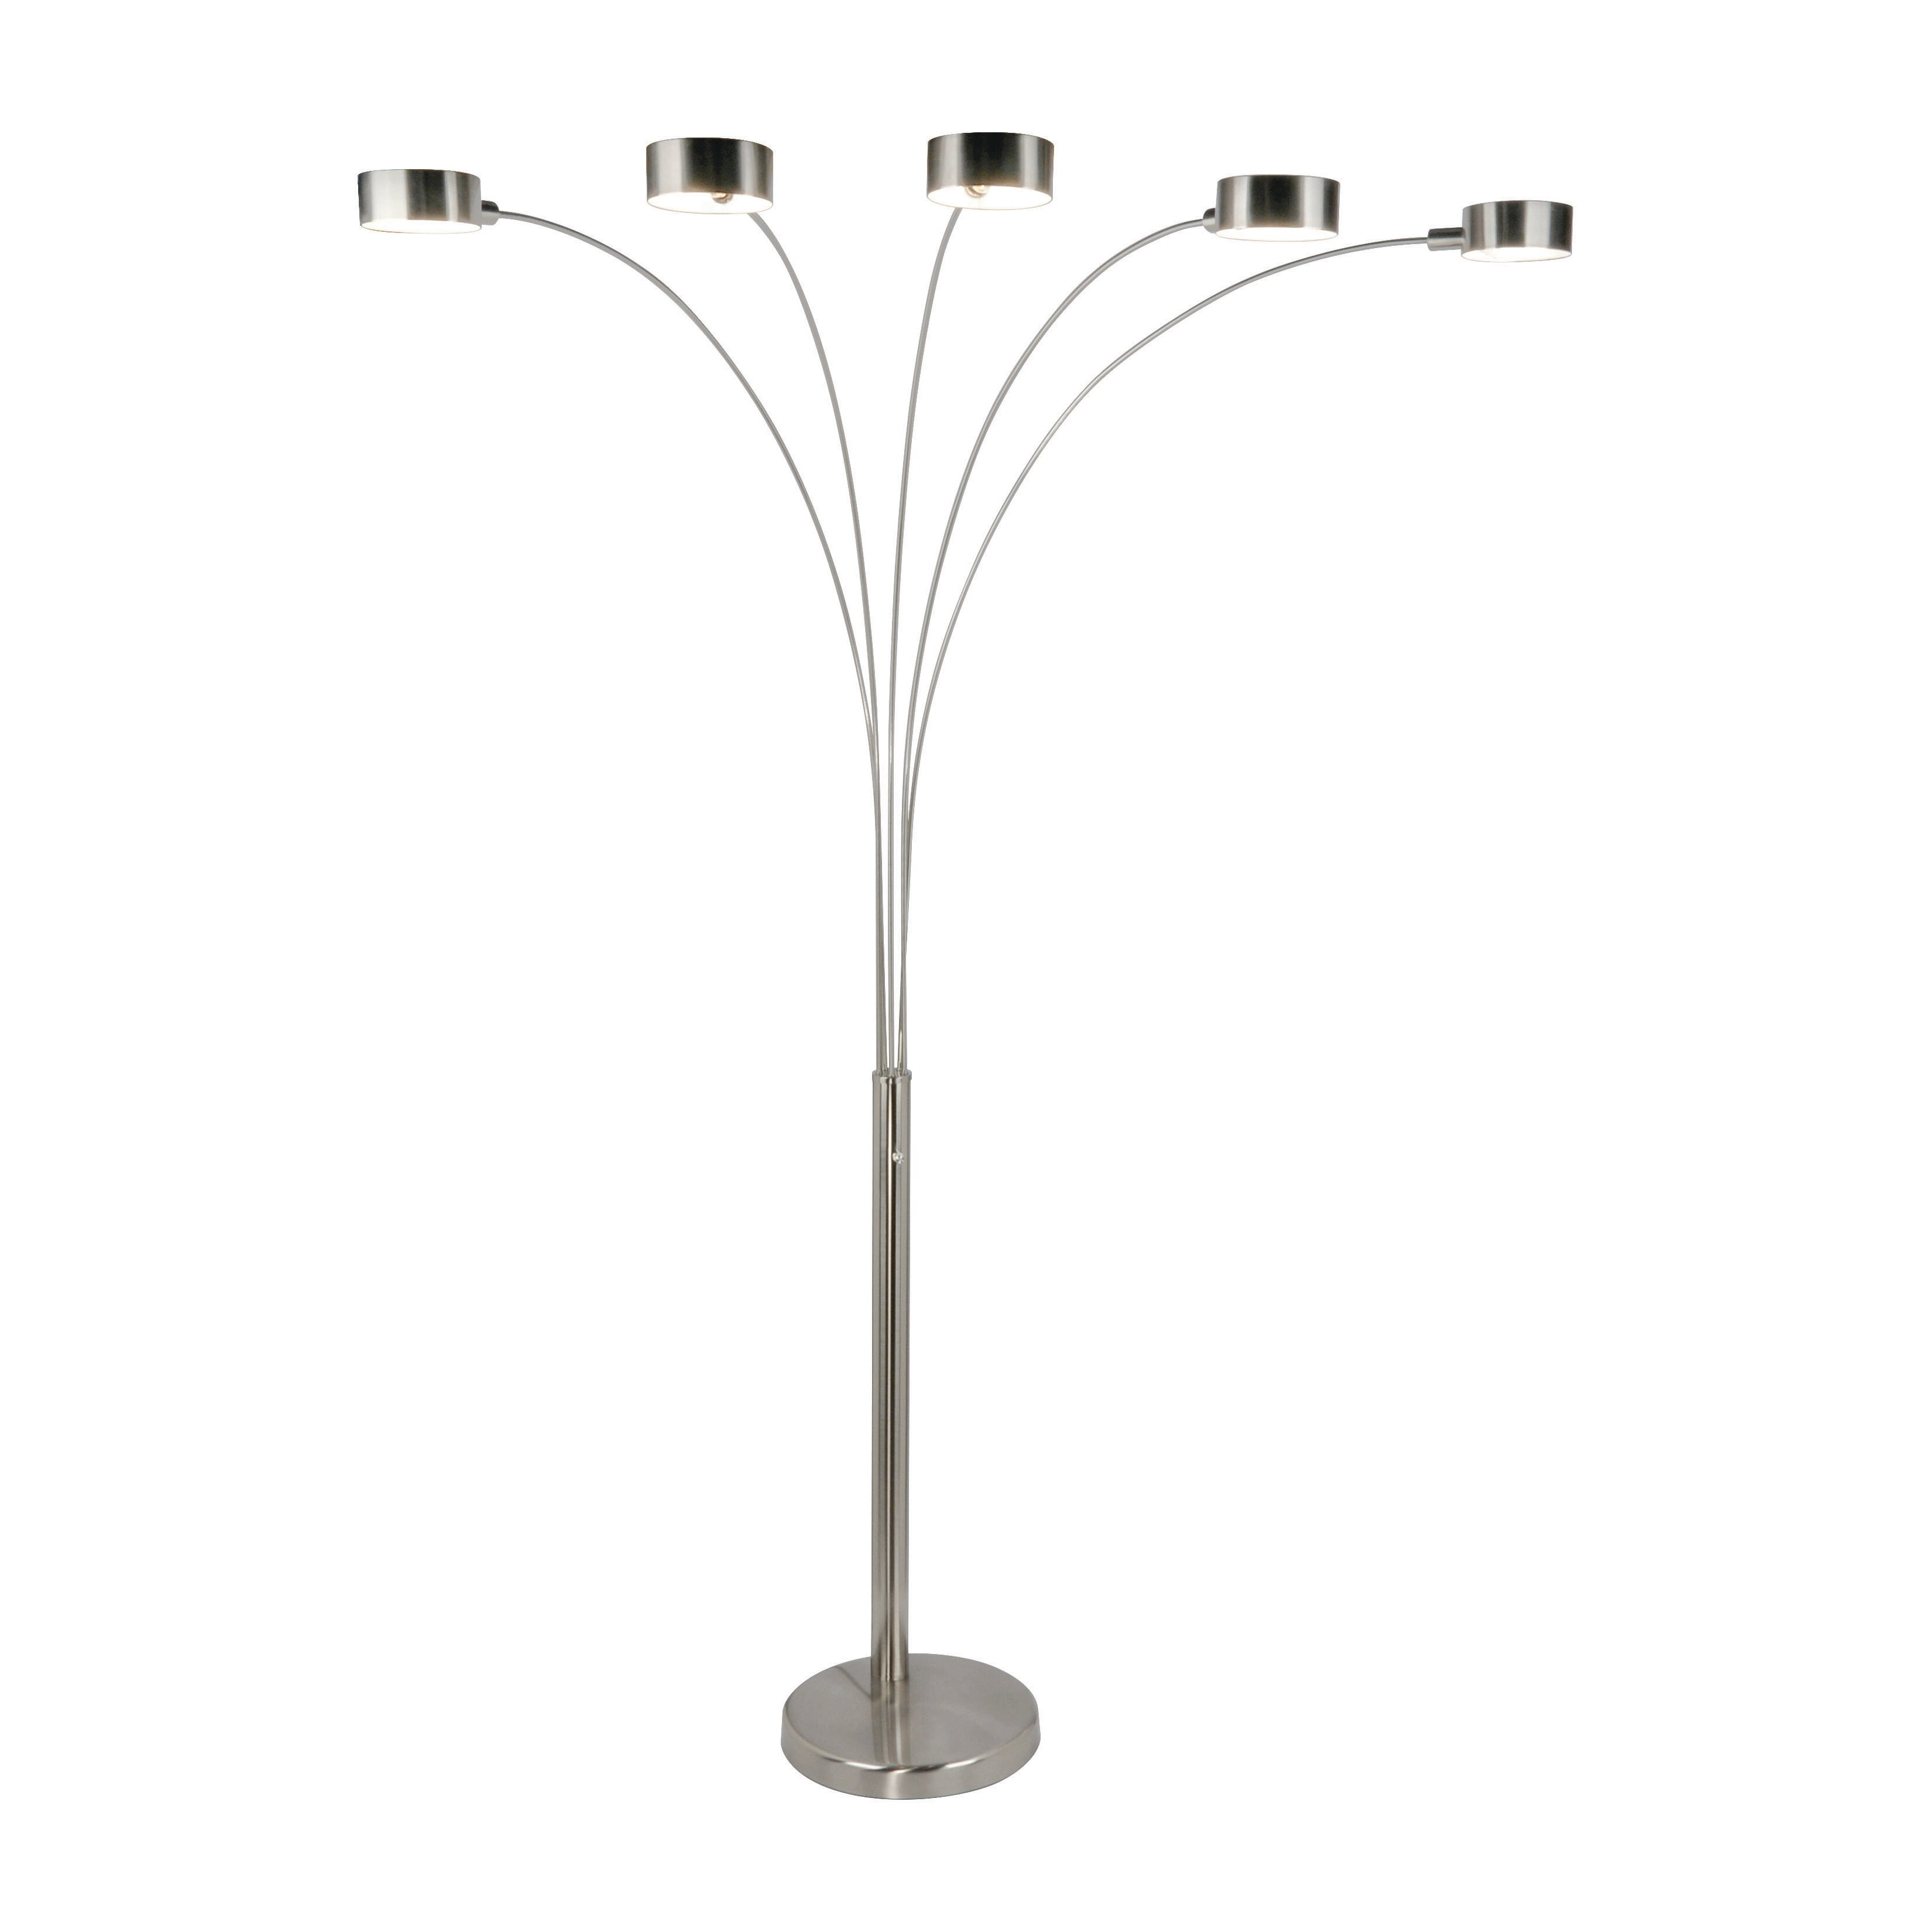 Brayden studio dabney 88quot arch floor lamp with dimmer for Micah 88 arch floor lamp with dimmer function